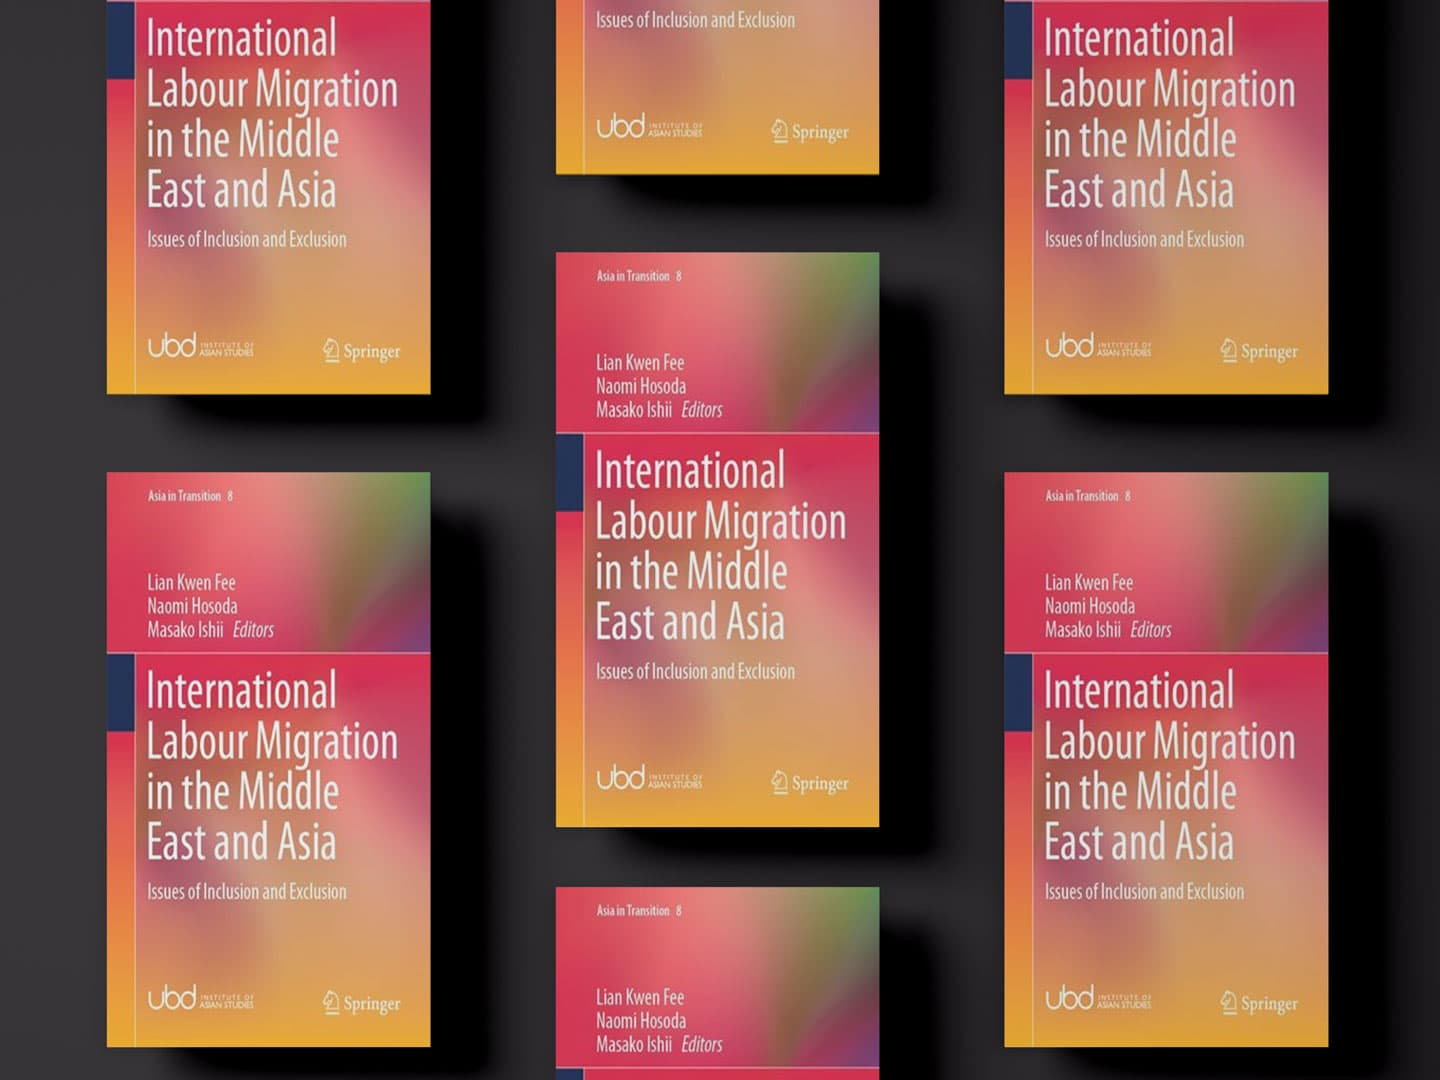 New Asia in Transition Volume on International Labour Migration in the Middle East and Asia